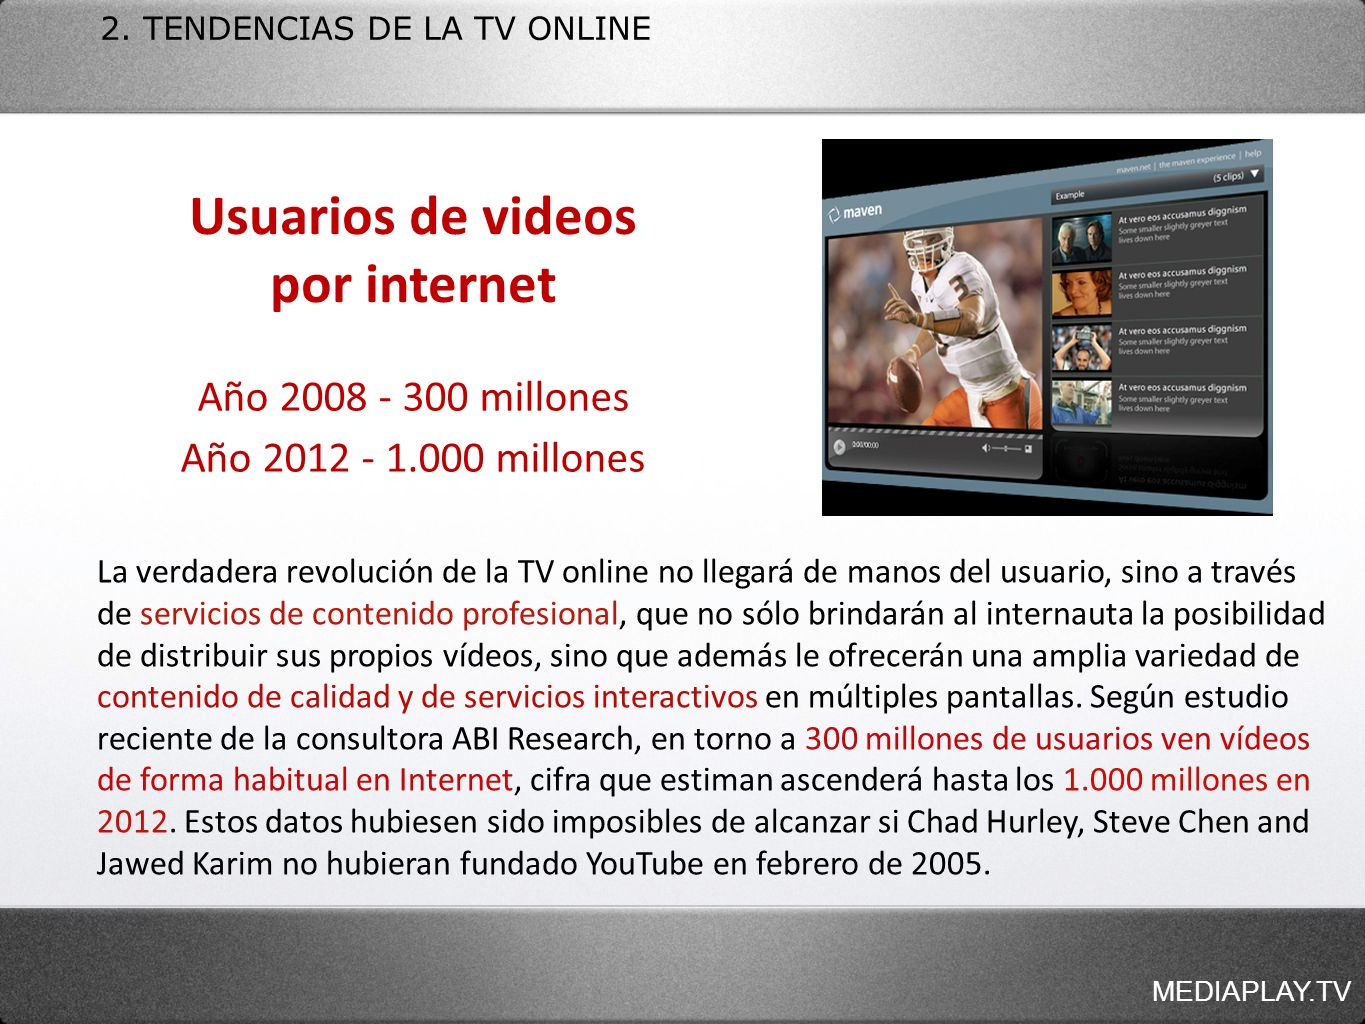 Usuarios de videos por internet